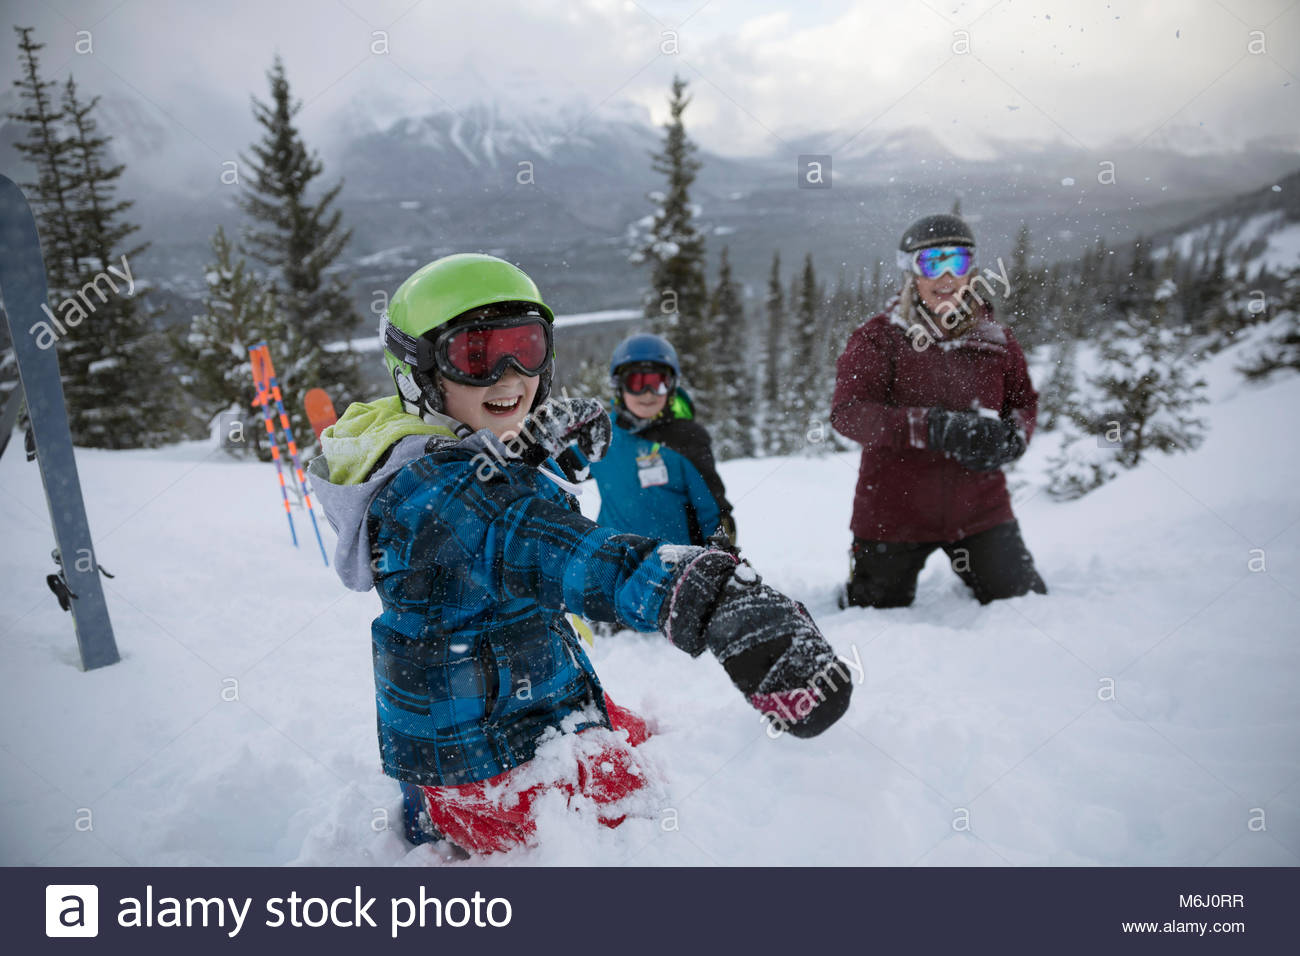 Portrait playful boy skier enjoying snowball fight with family on snowy mountain - Stock Image